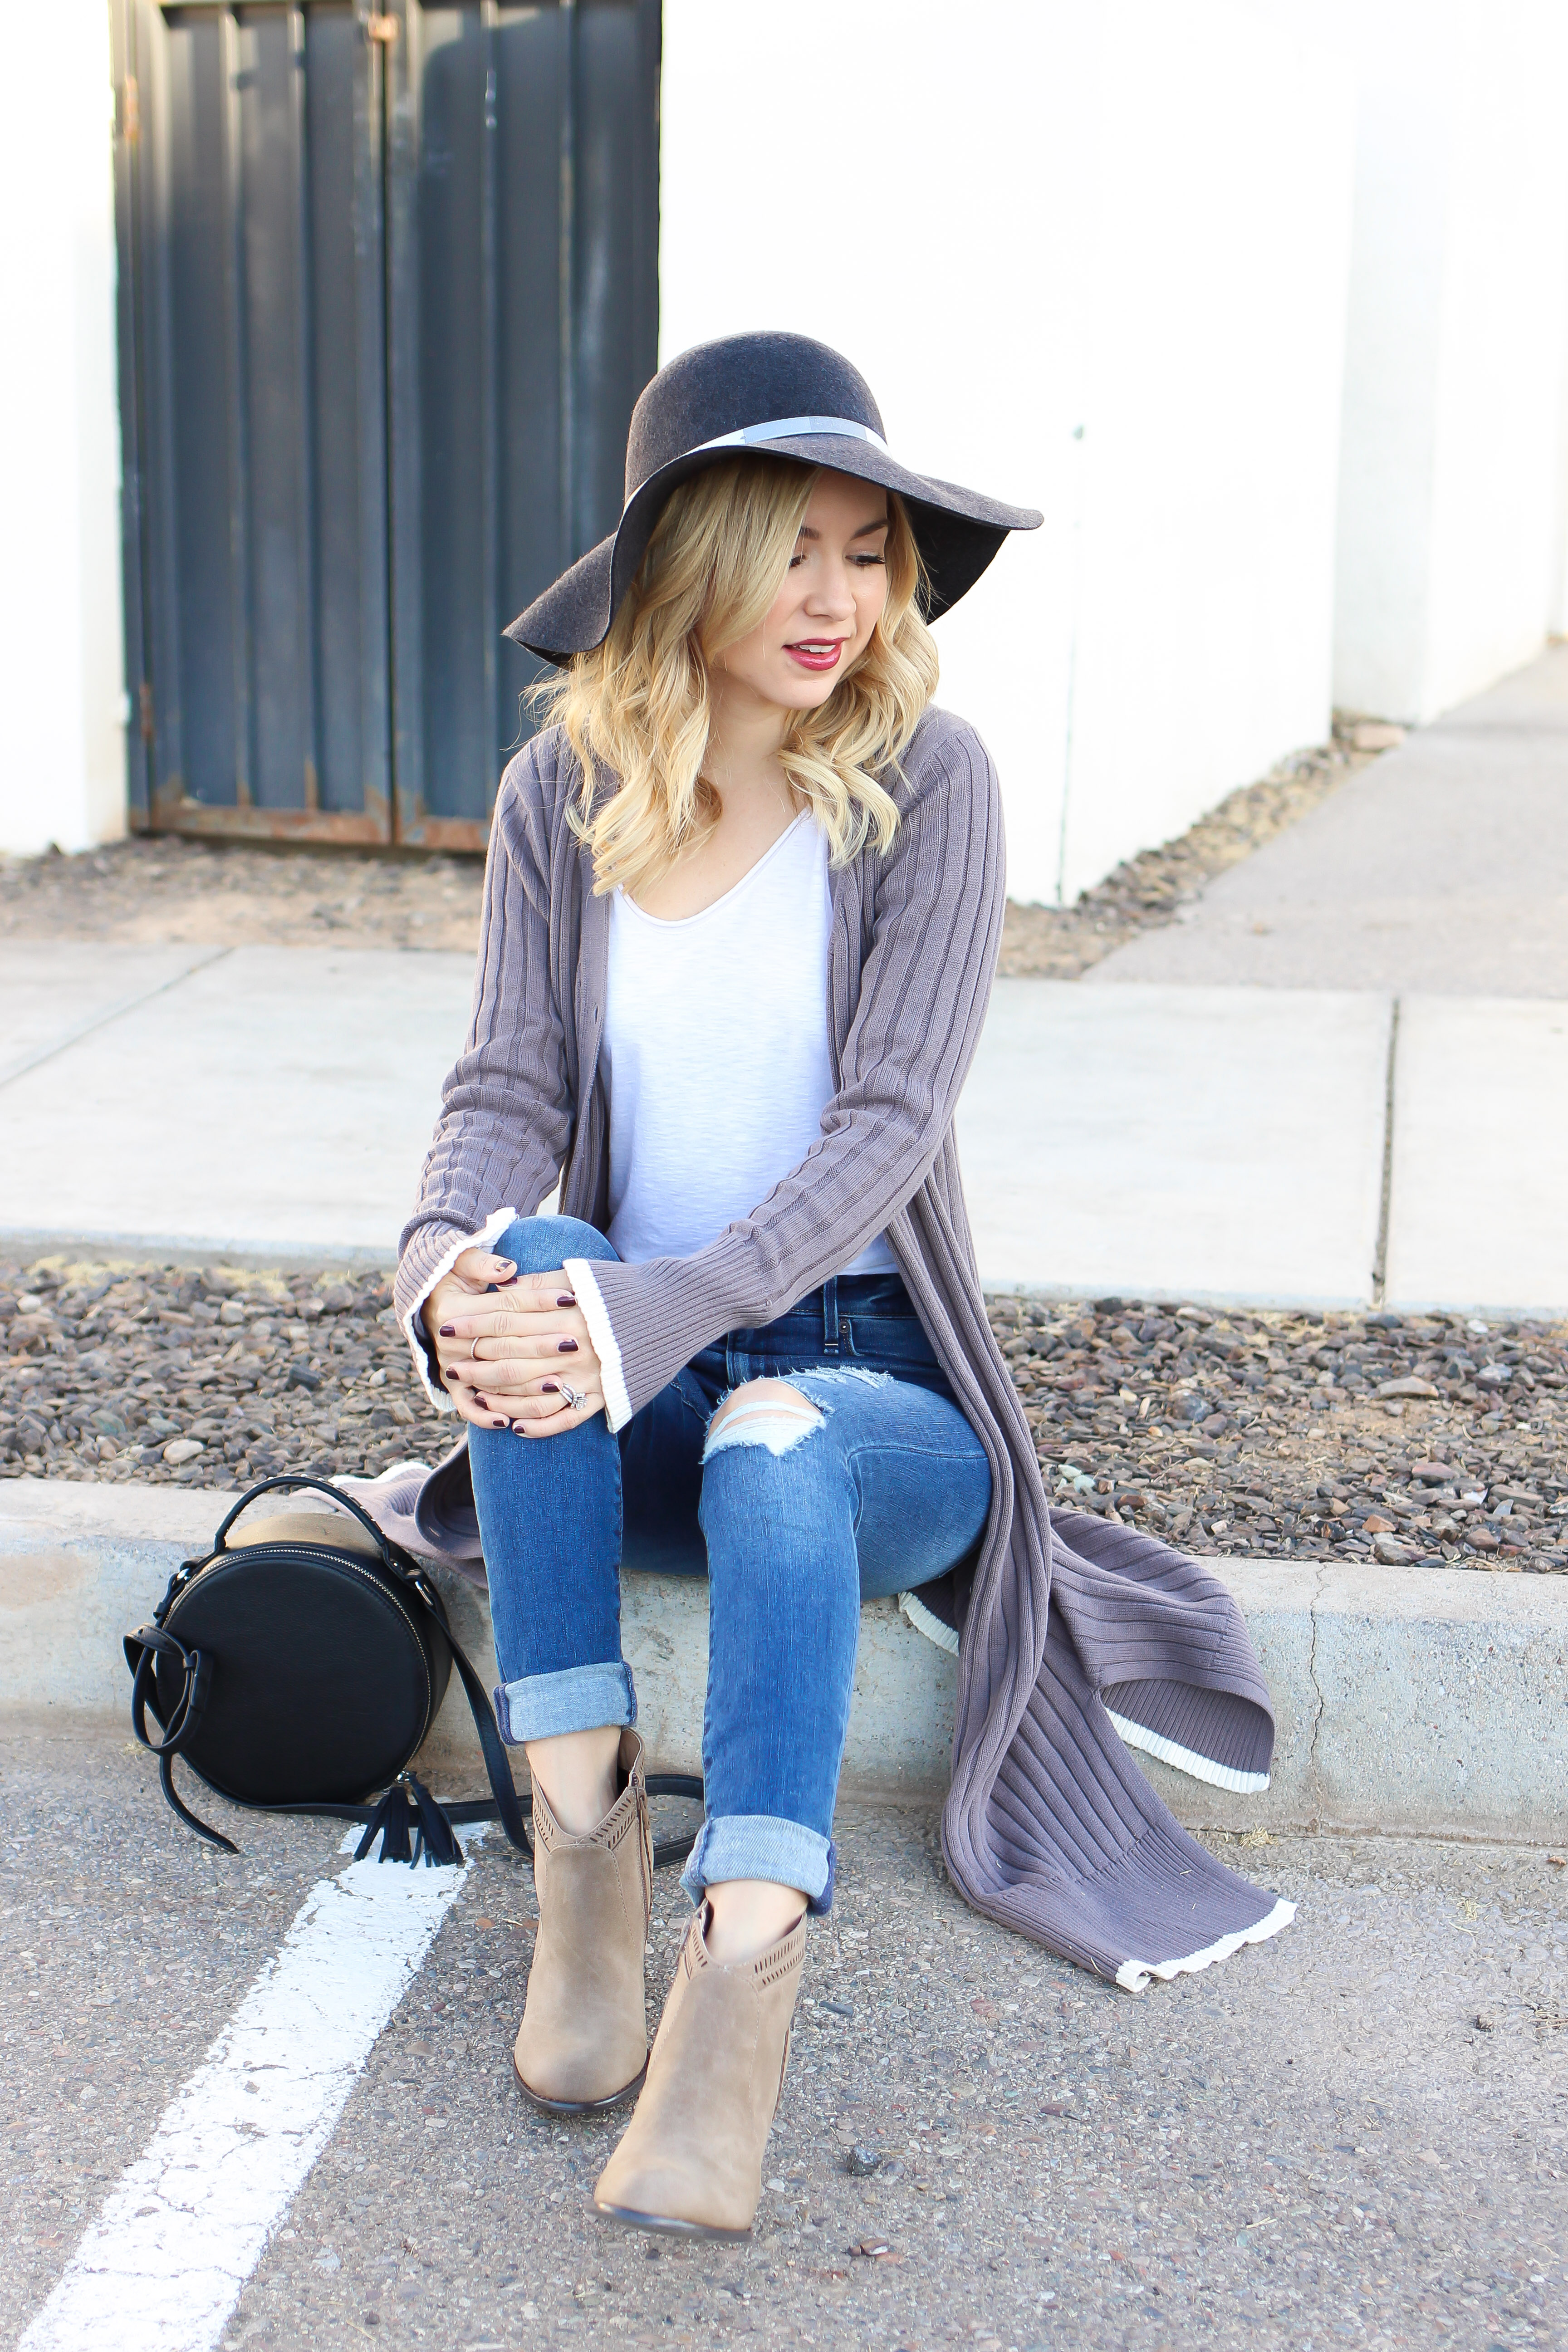 Simply Sutter - Floppy hat - cardigan outfit